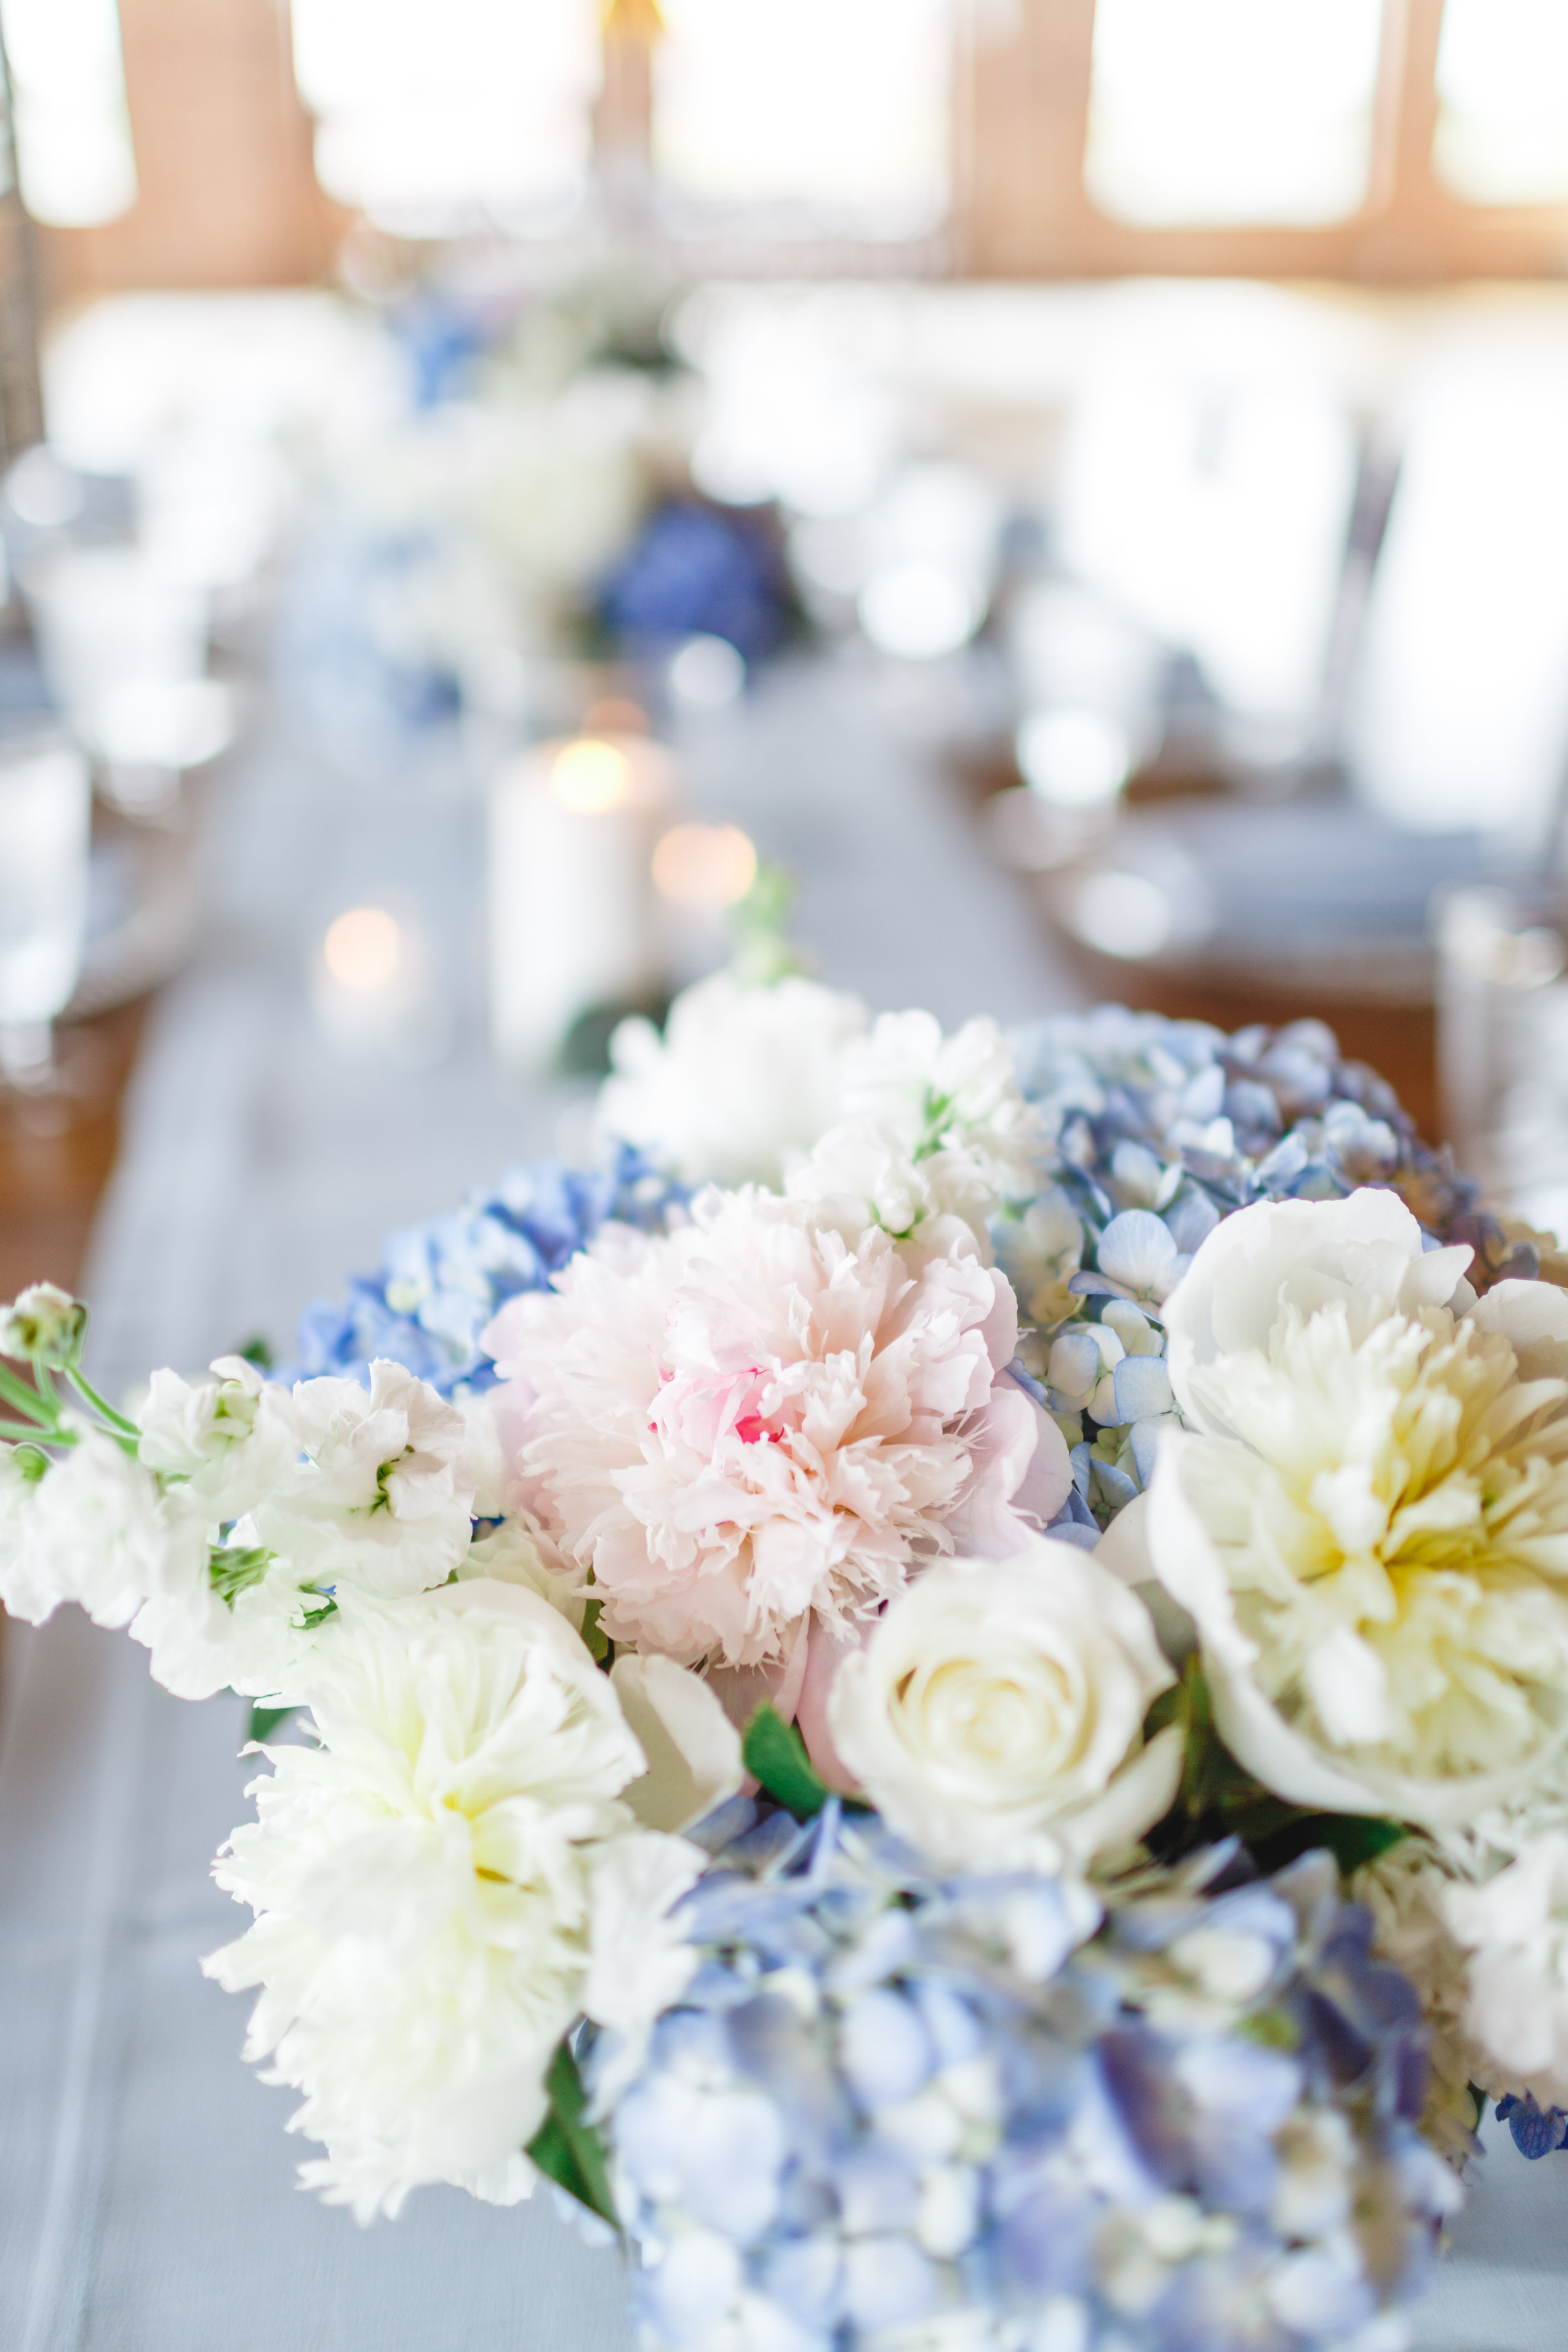 White Roses and Blue Hydrangea